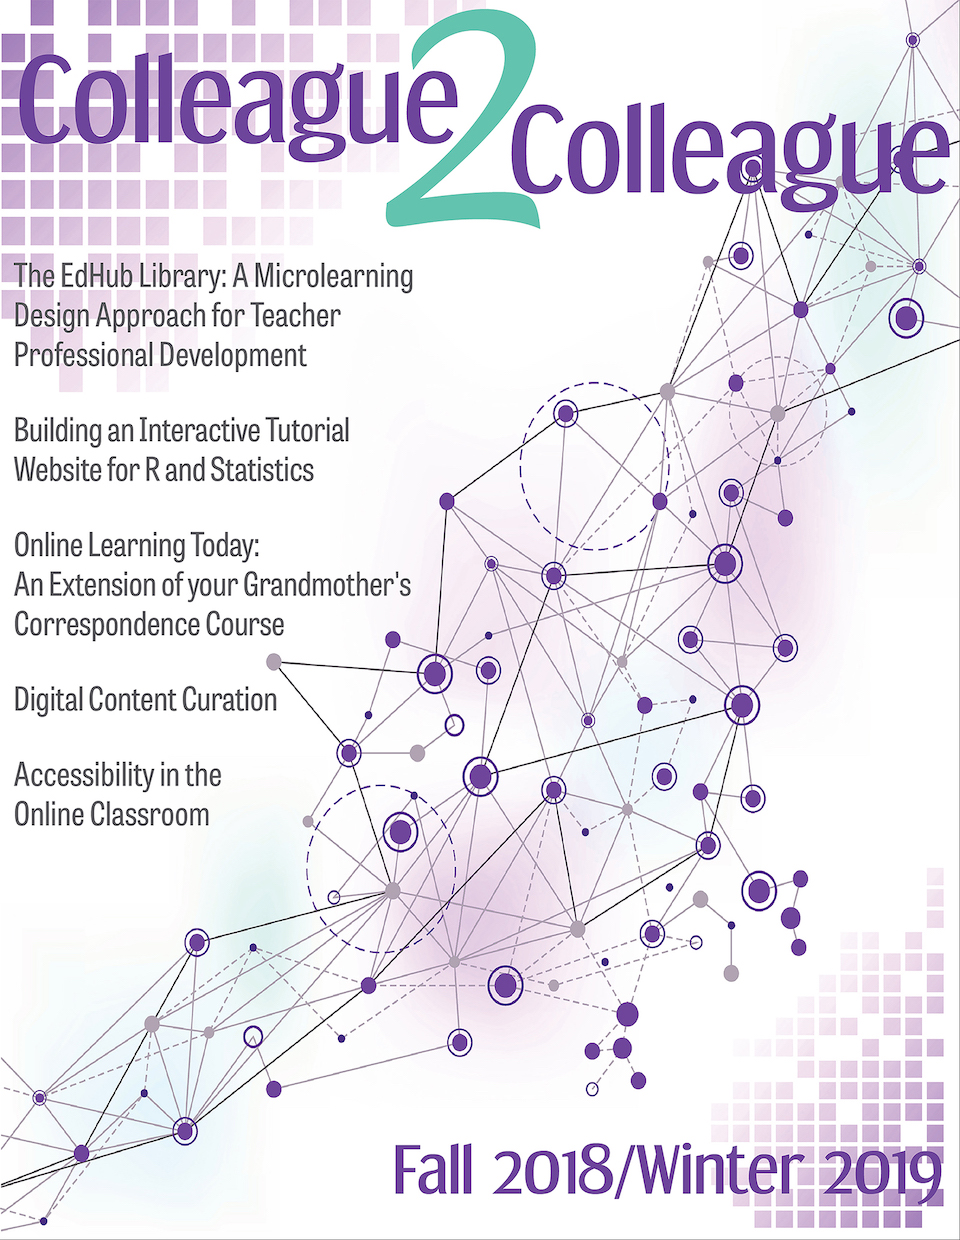 Colleague2Colleague Fall 2018/Winter 2019 Cover